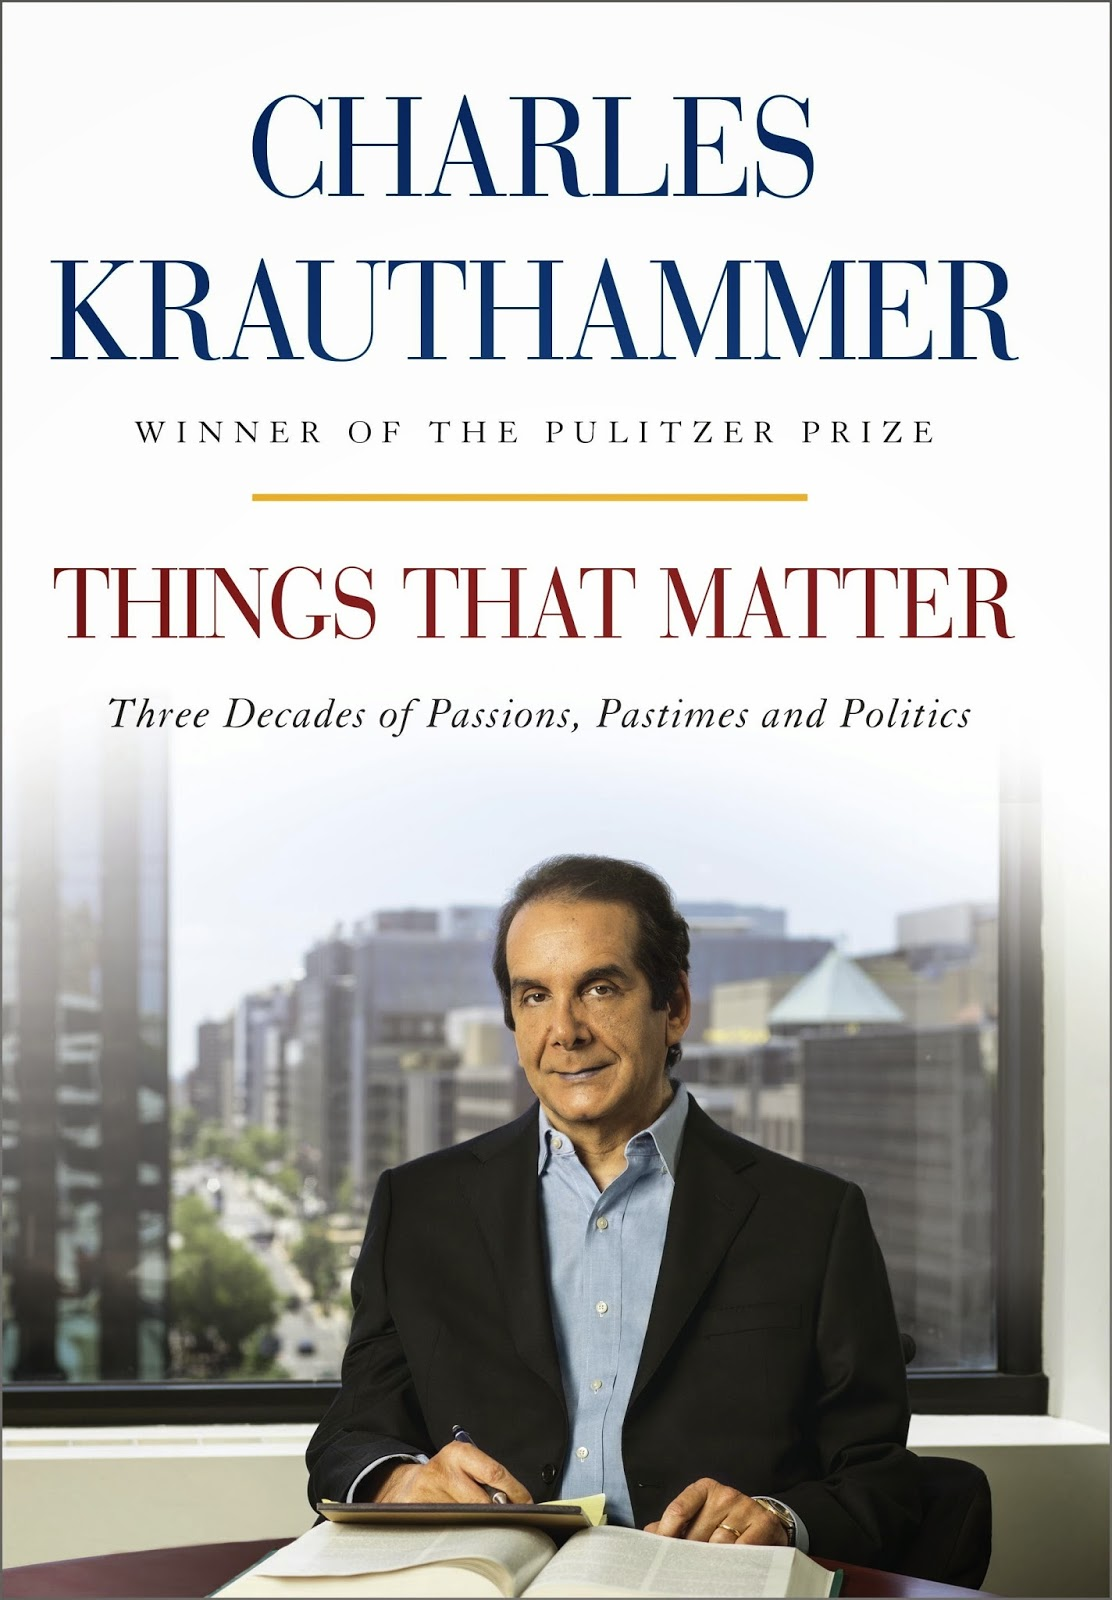 Things That Matter by Charles Krauthammer is a well-written, thought-provoking book